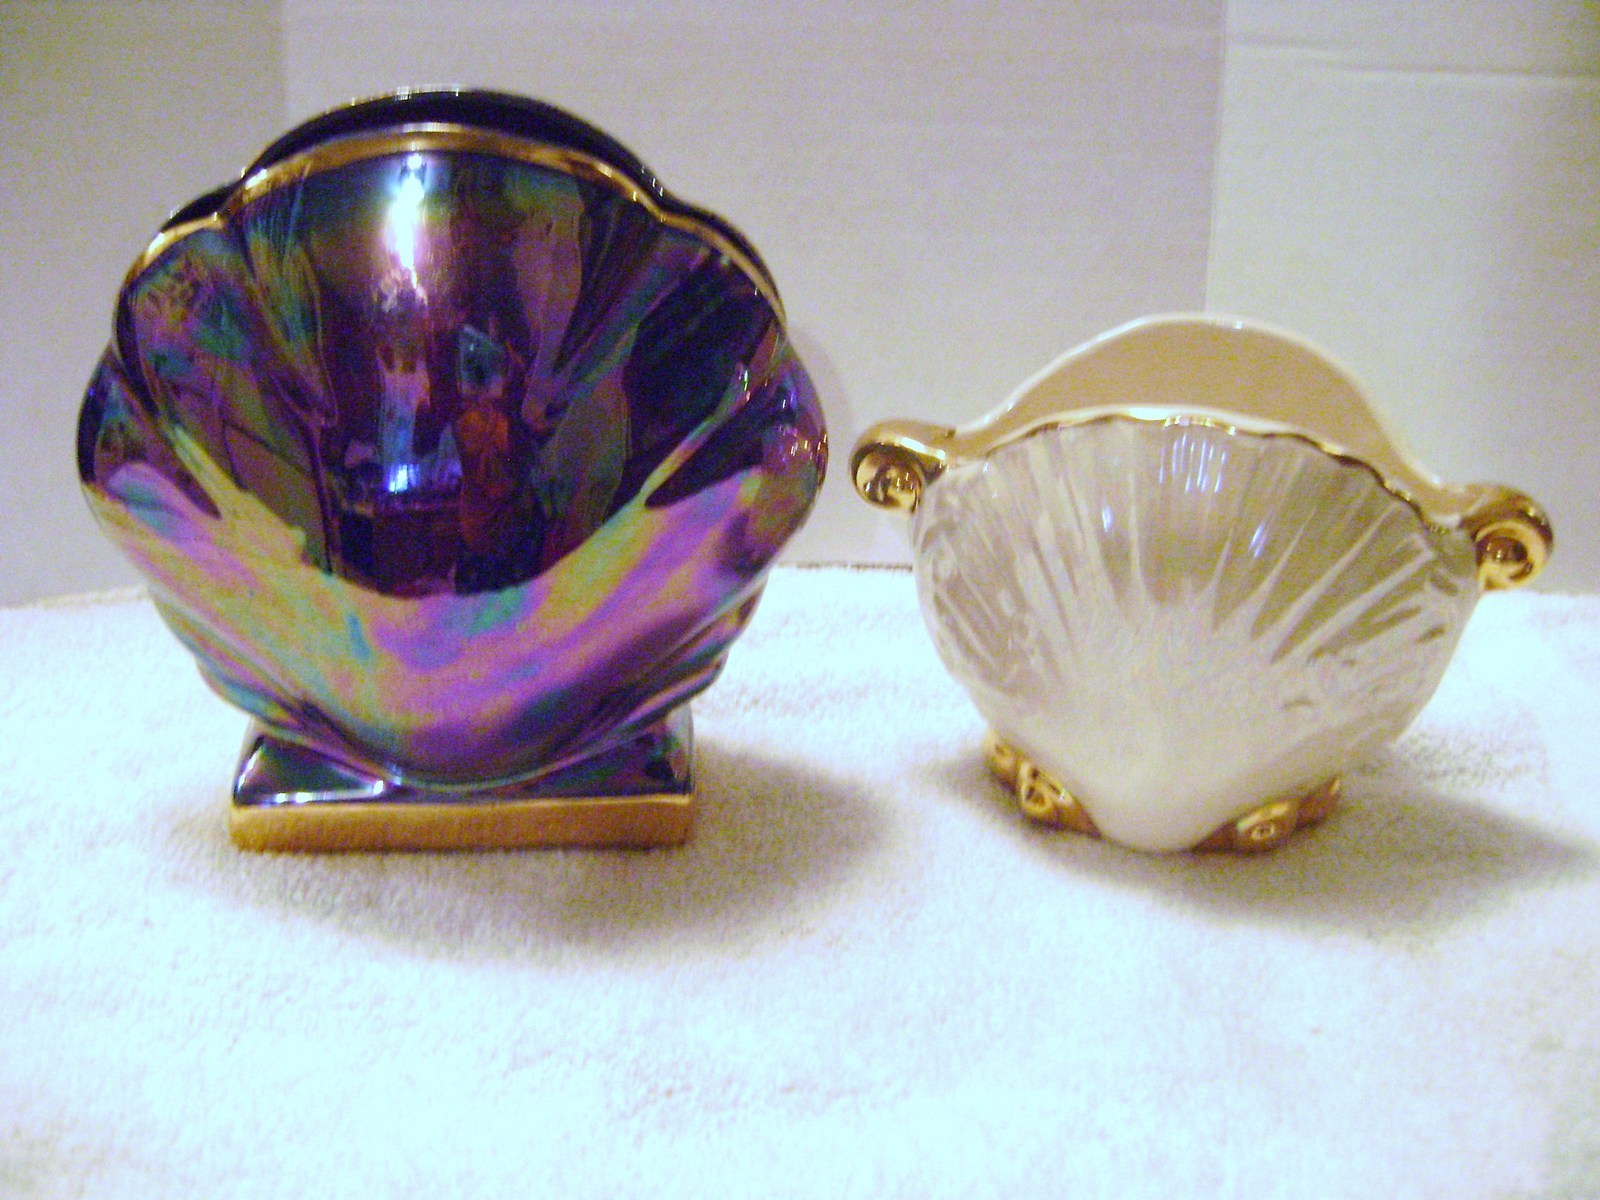 Primary image for Ceramic Iridescent Shell Shaped Vases